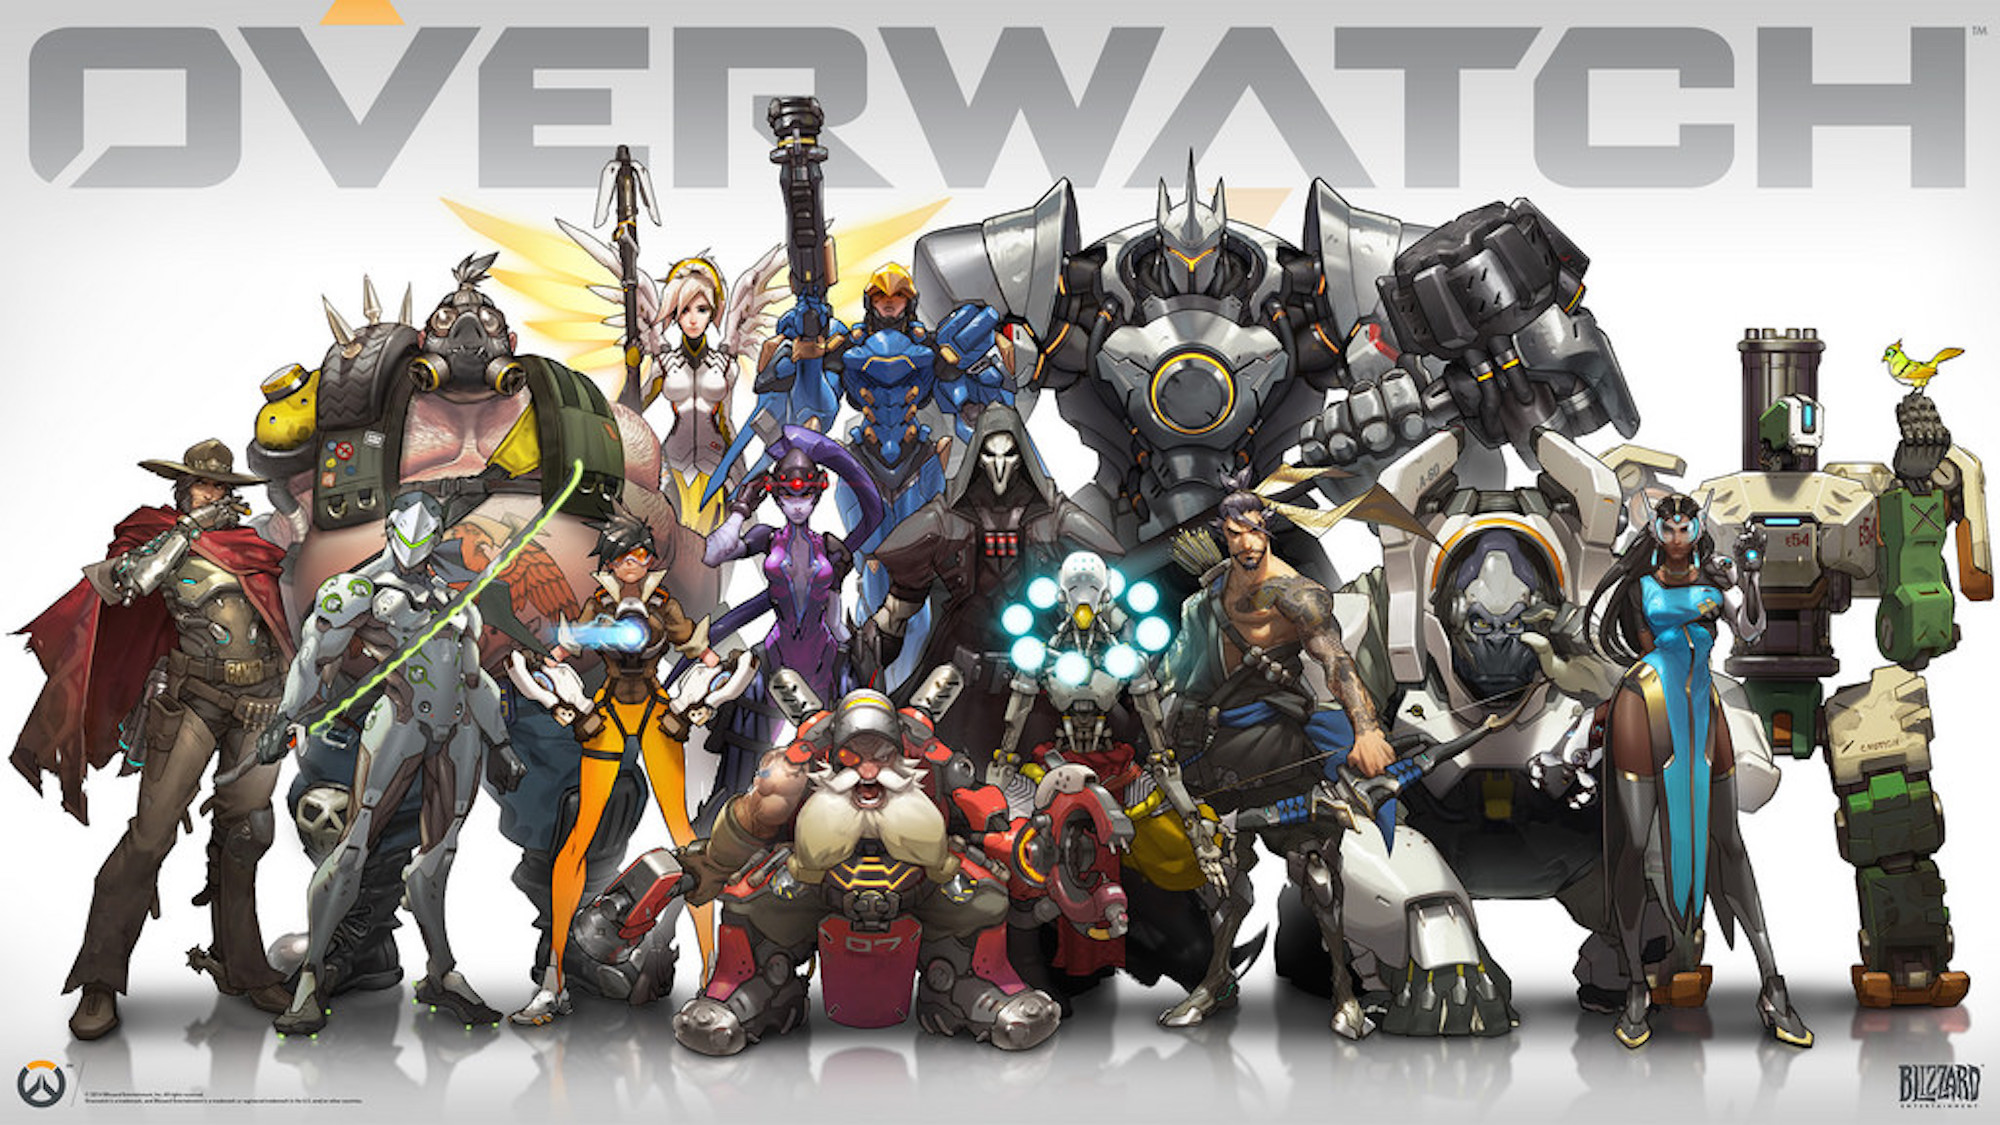 Overwatch's update included 12 special holiday character skins, a redesigned map and a brand new Halloween-themed game mode. (BagoGames/Flickr via Creative Common)